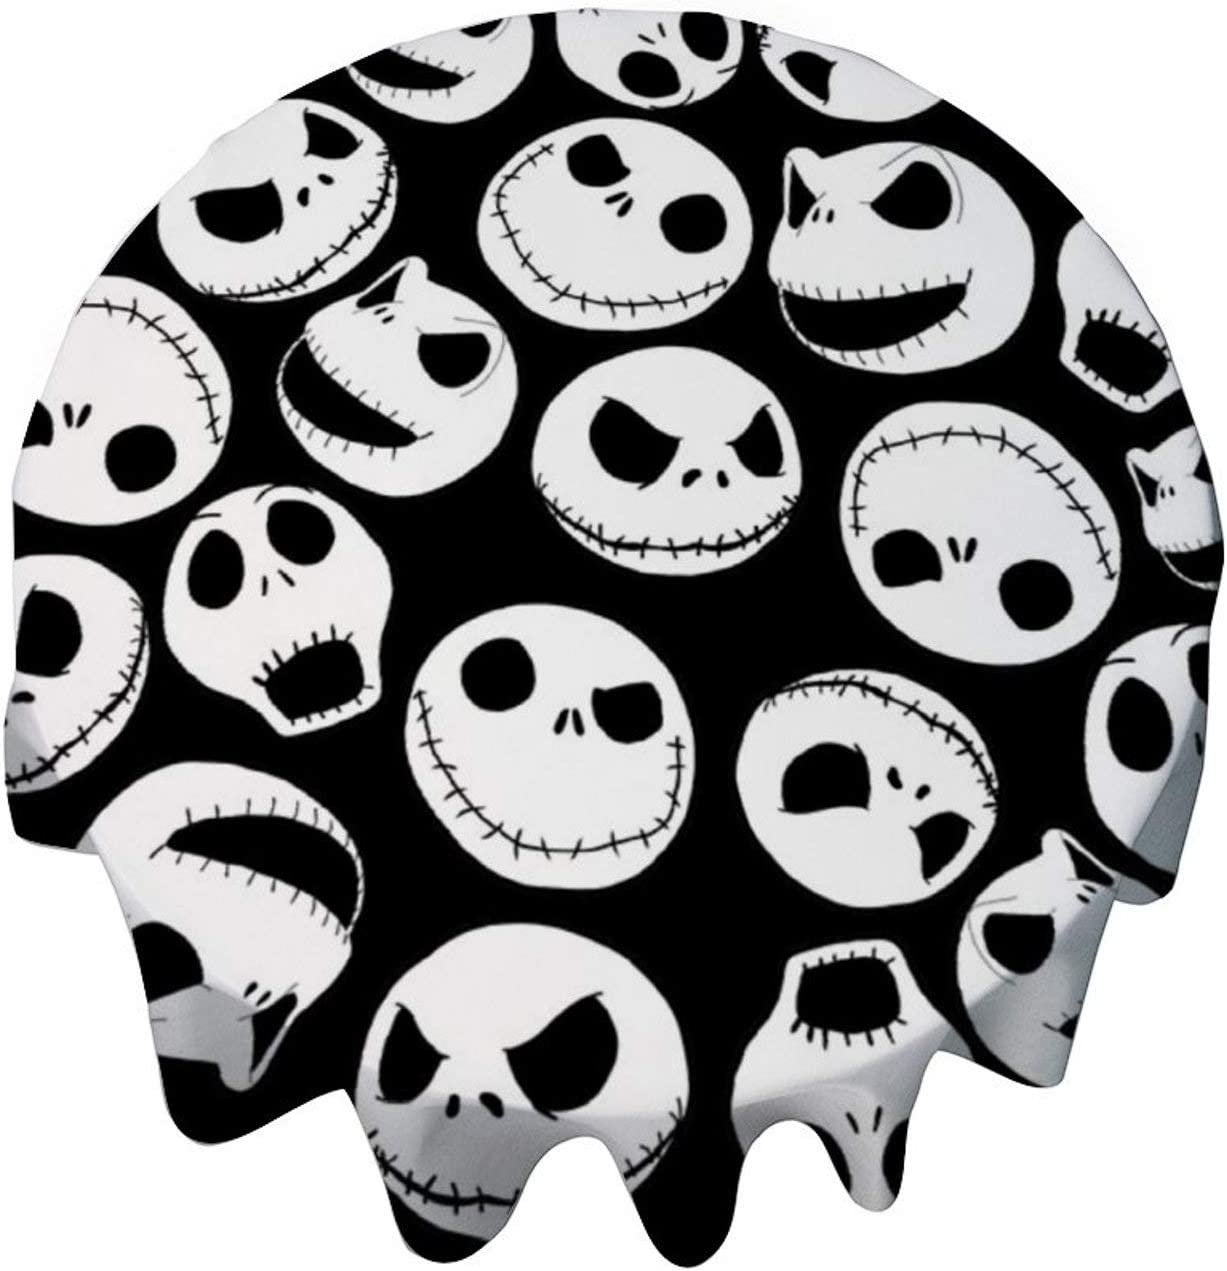 yyone Tablecloth Round 50 Inch Table Cover Jack Skellington Pattern Table Cloth Decor for Buffet Table, Parties, Holiday Dinner, Wedding & More